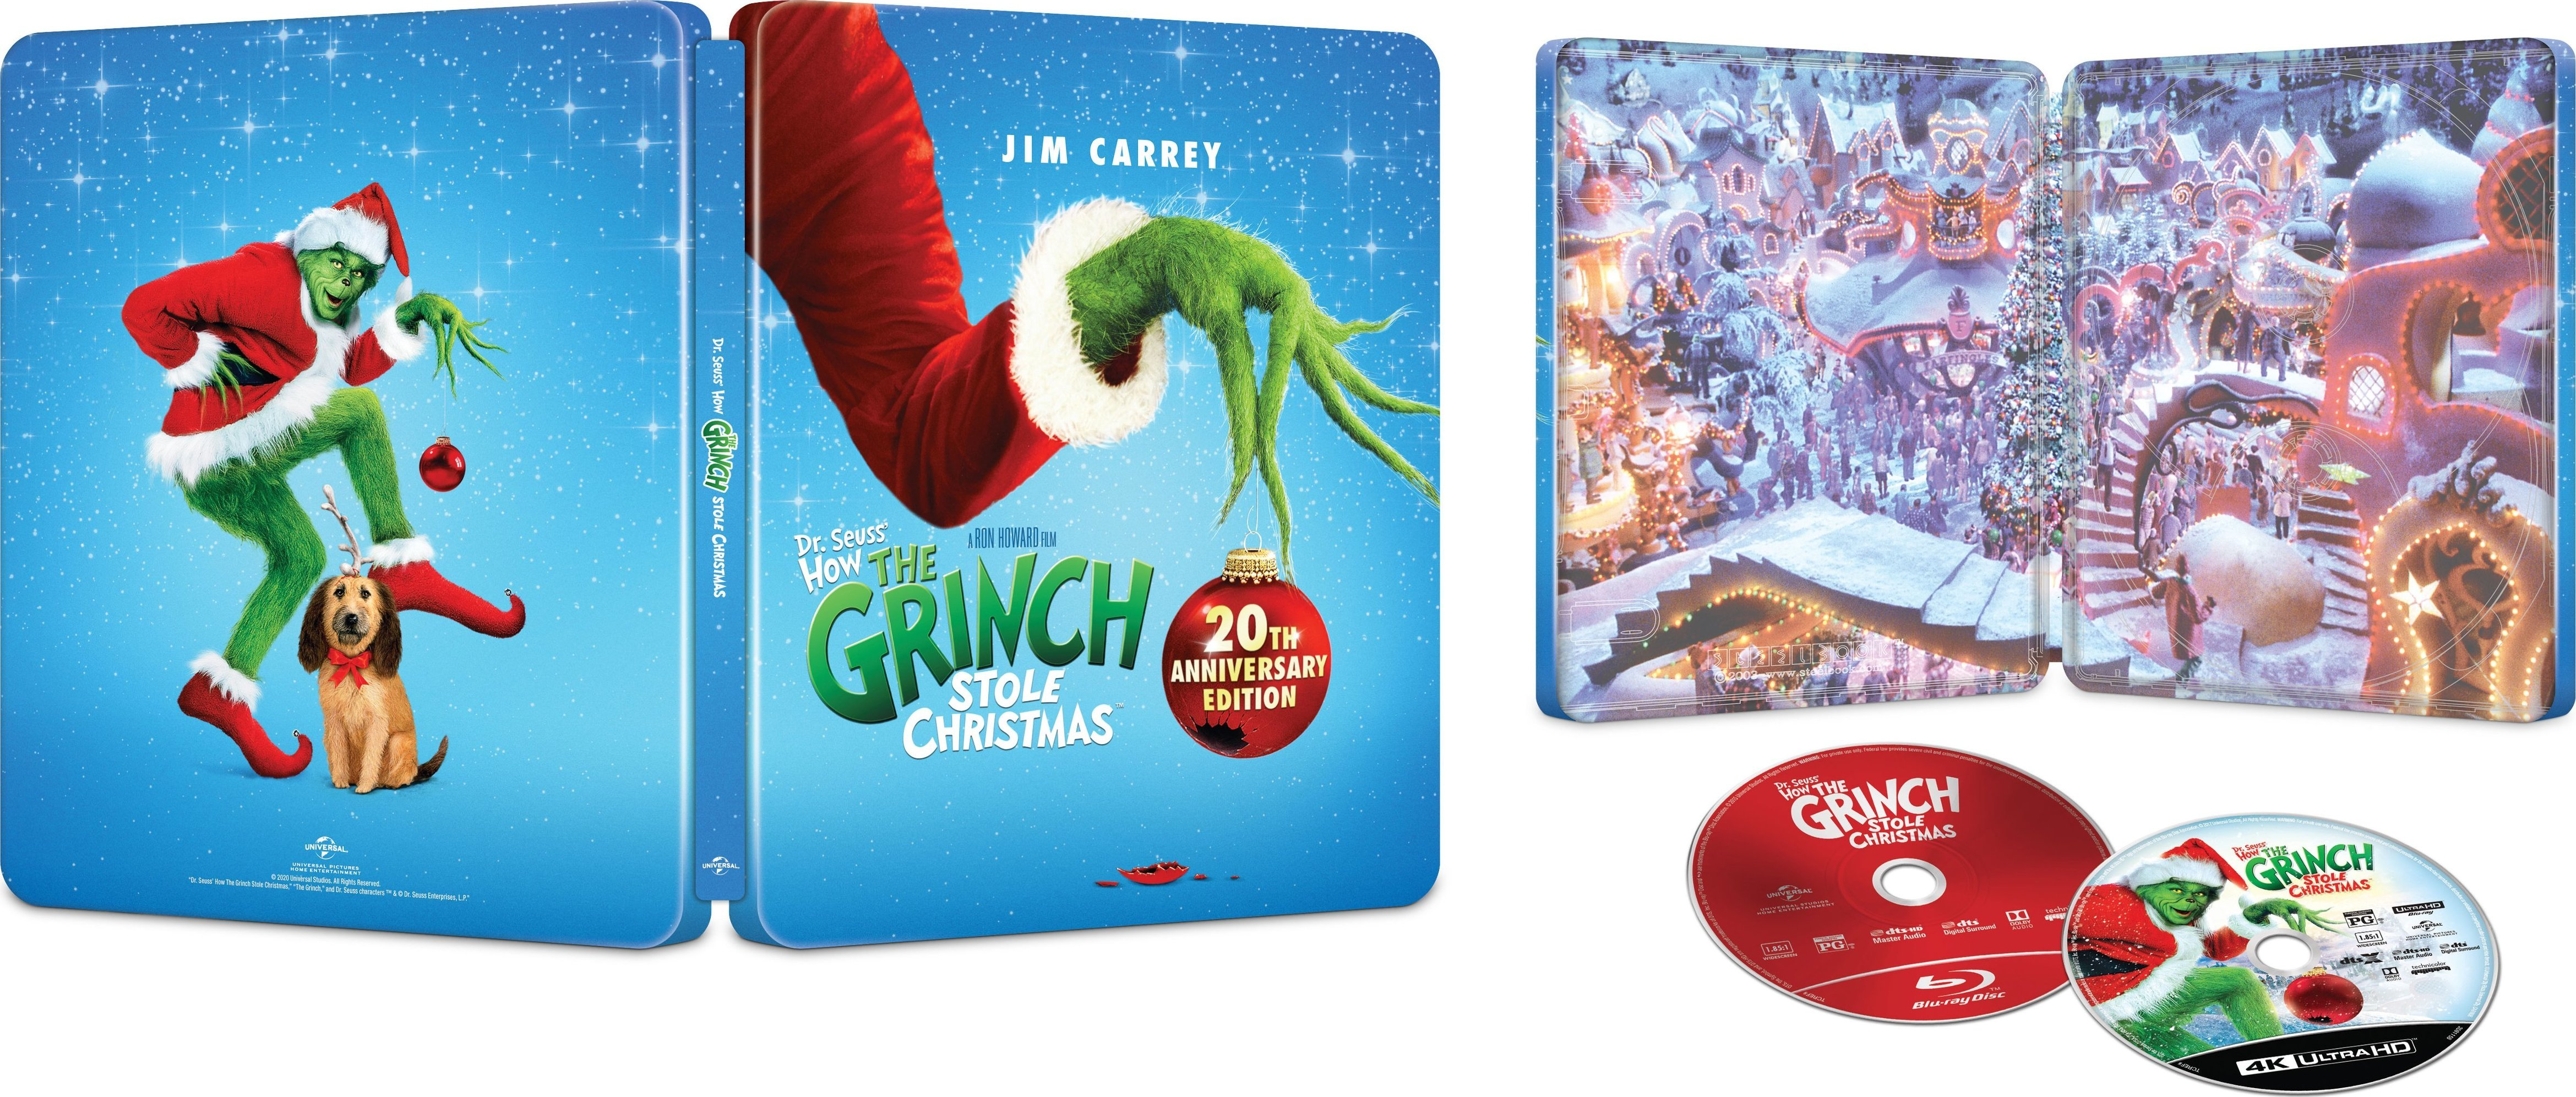 How The Grinch Stole Christmas 2021 Dvd Cover Dr Seuss How The Grinch Stole Christmas 4k Blu Ray Release Date November 1 2020 Best Buy Exclusive Steelbook